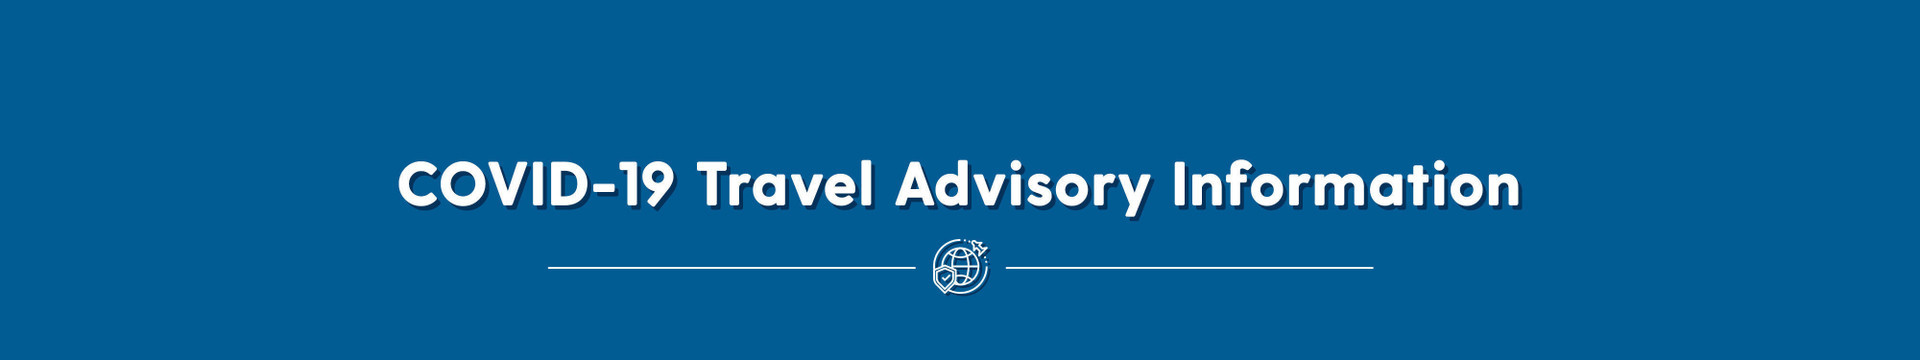 Coronavirus Travel Advisory